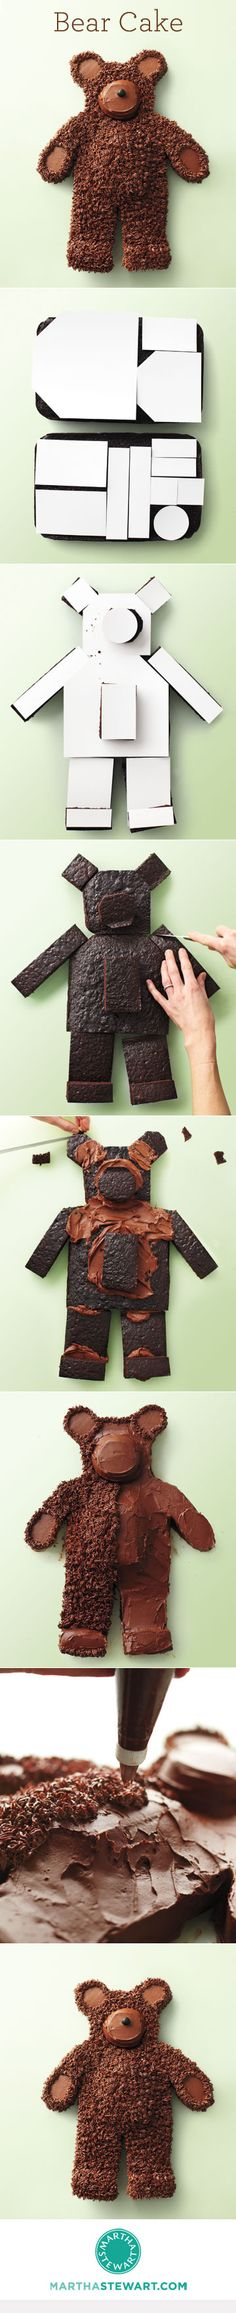 How to Make a Bear Cake. So cute!